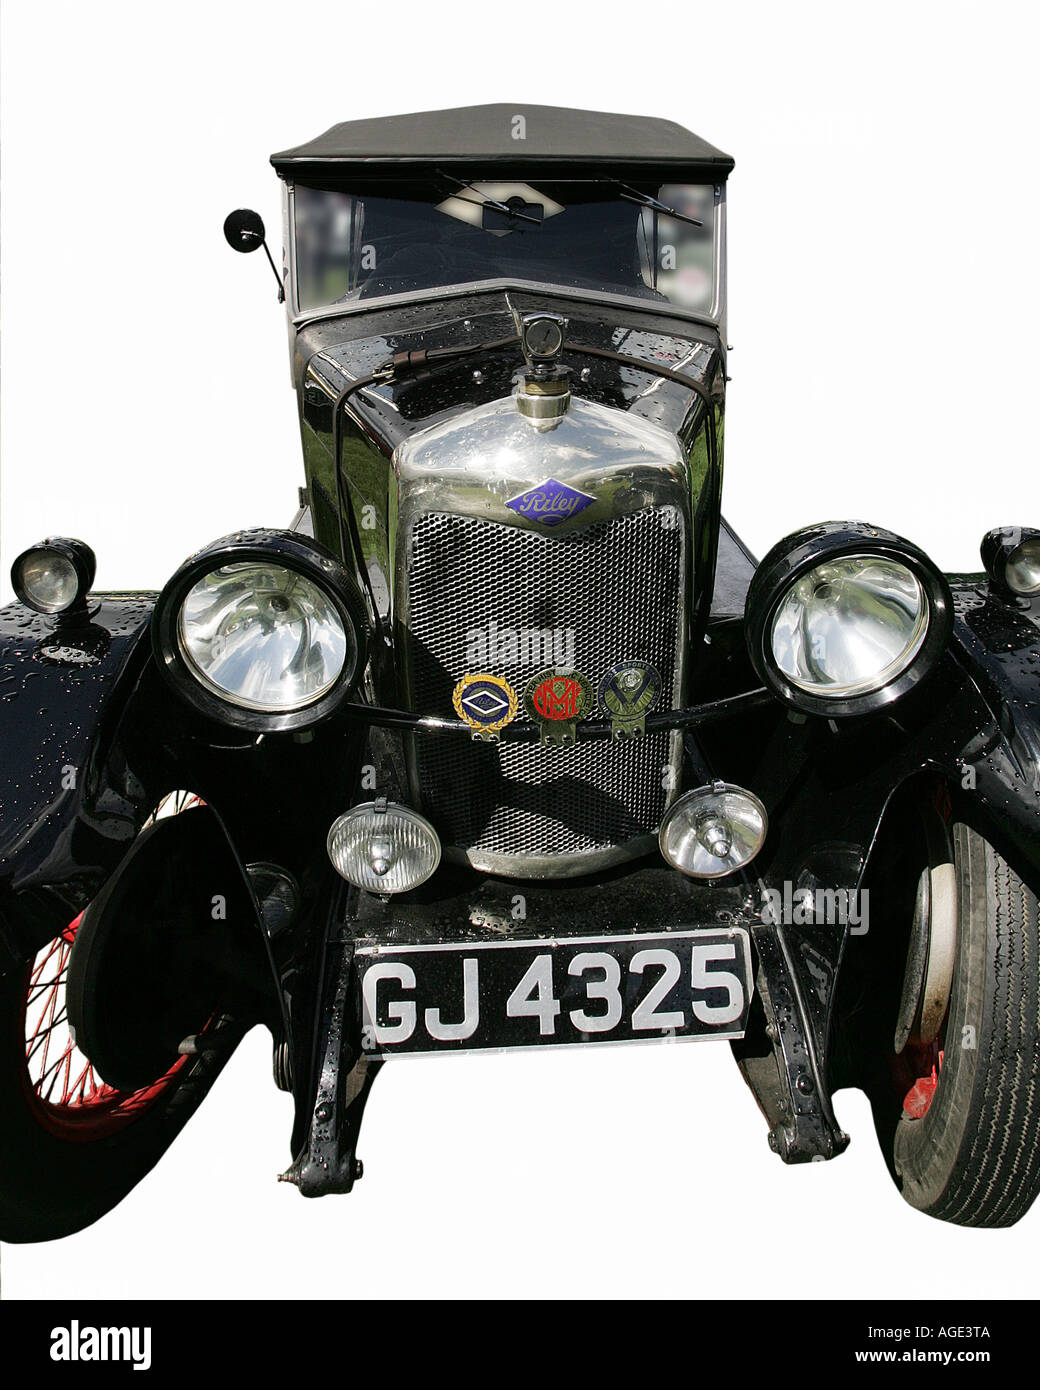 classic car Riley old history vehicle vintage antipodes symbol Stock ...